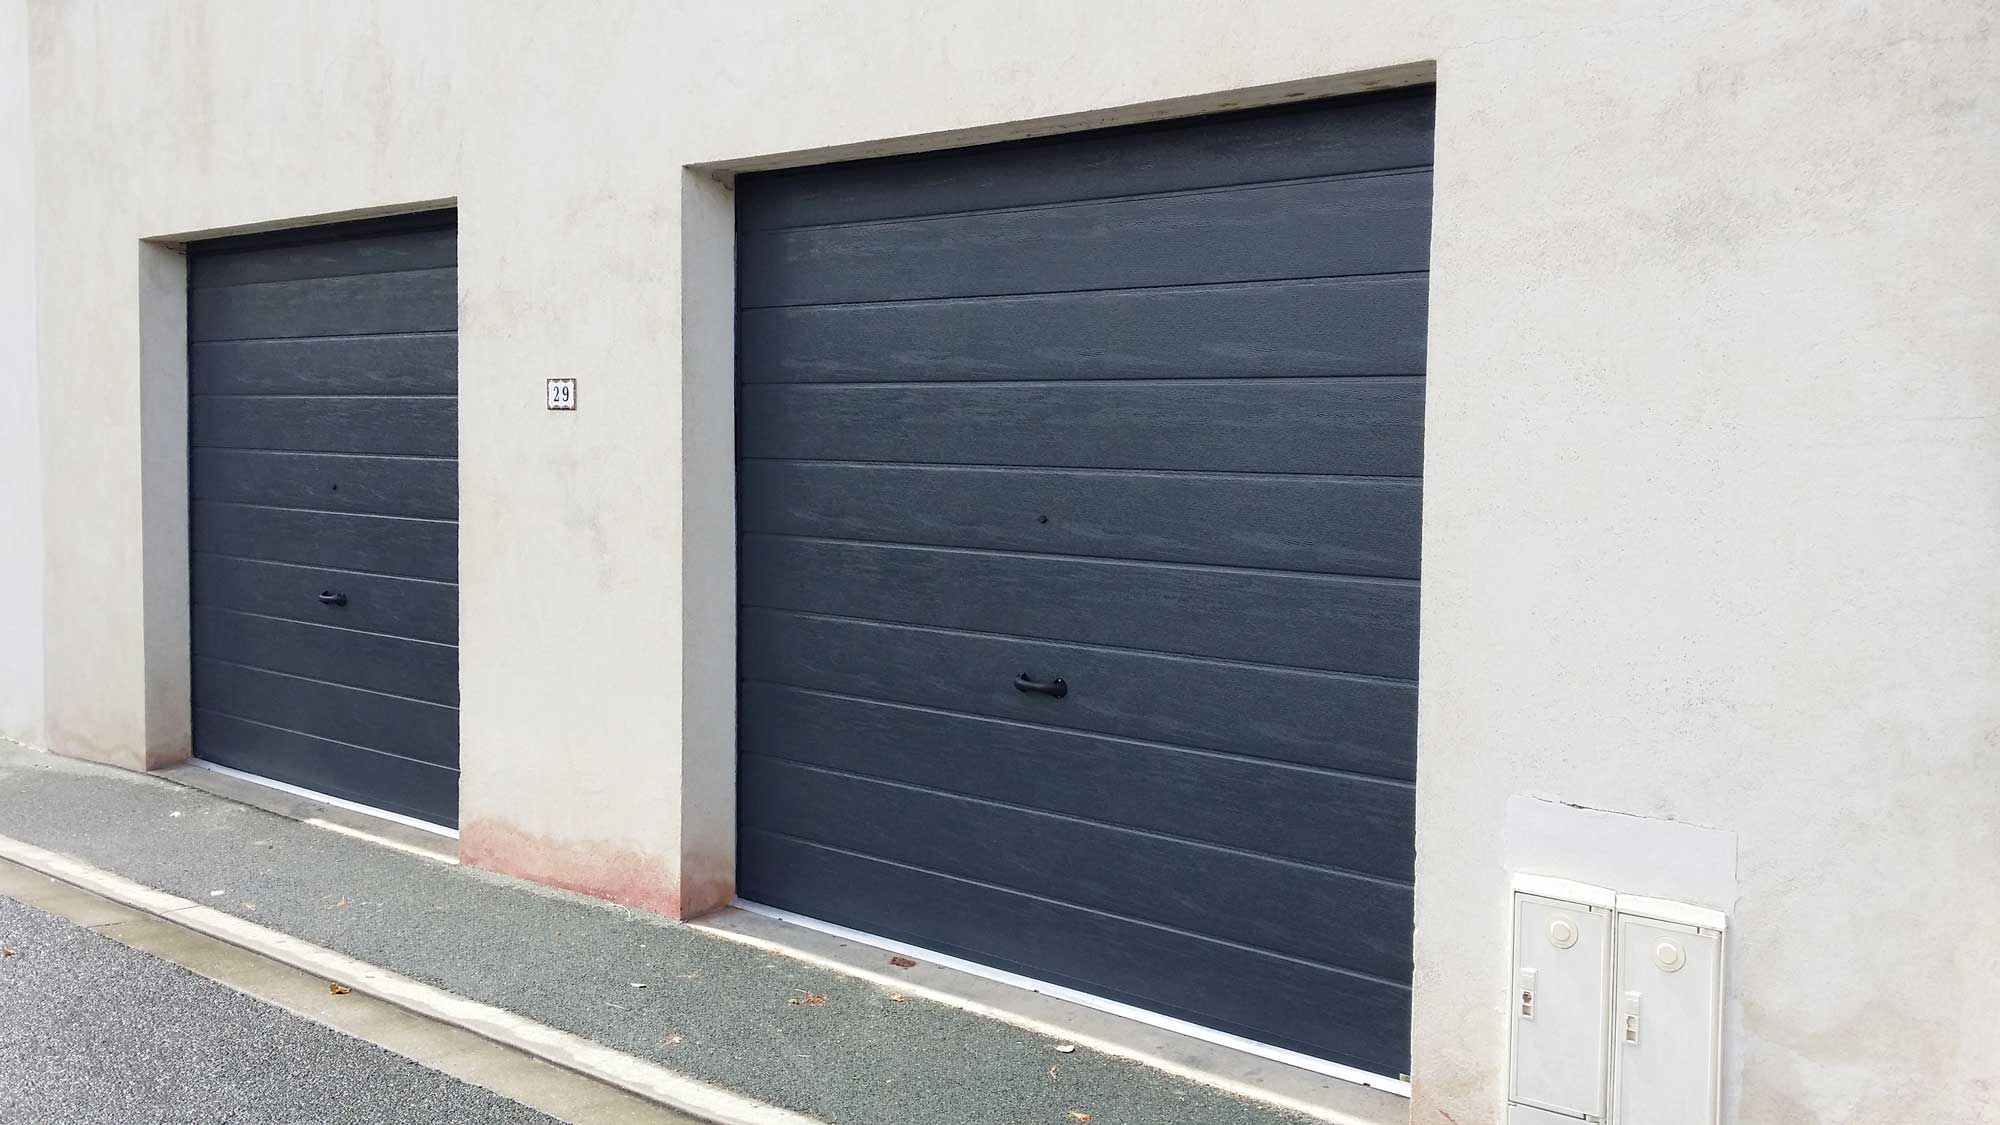 Pose de portes de garage sectionnelle 7016 sur mesure par solabaie rochefort - Porte de garage sectionnelle gris anthracite ...